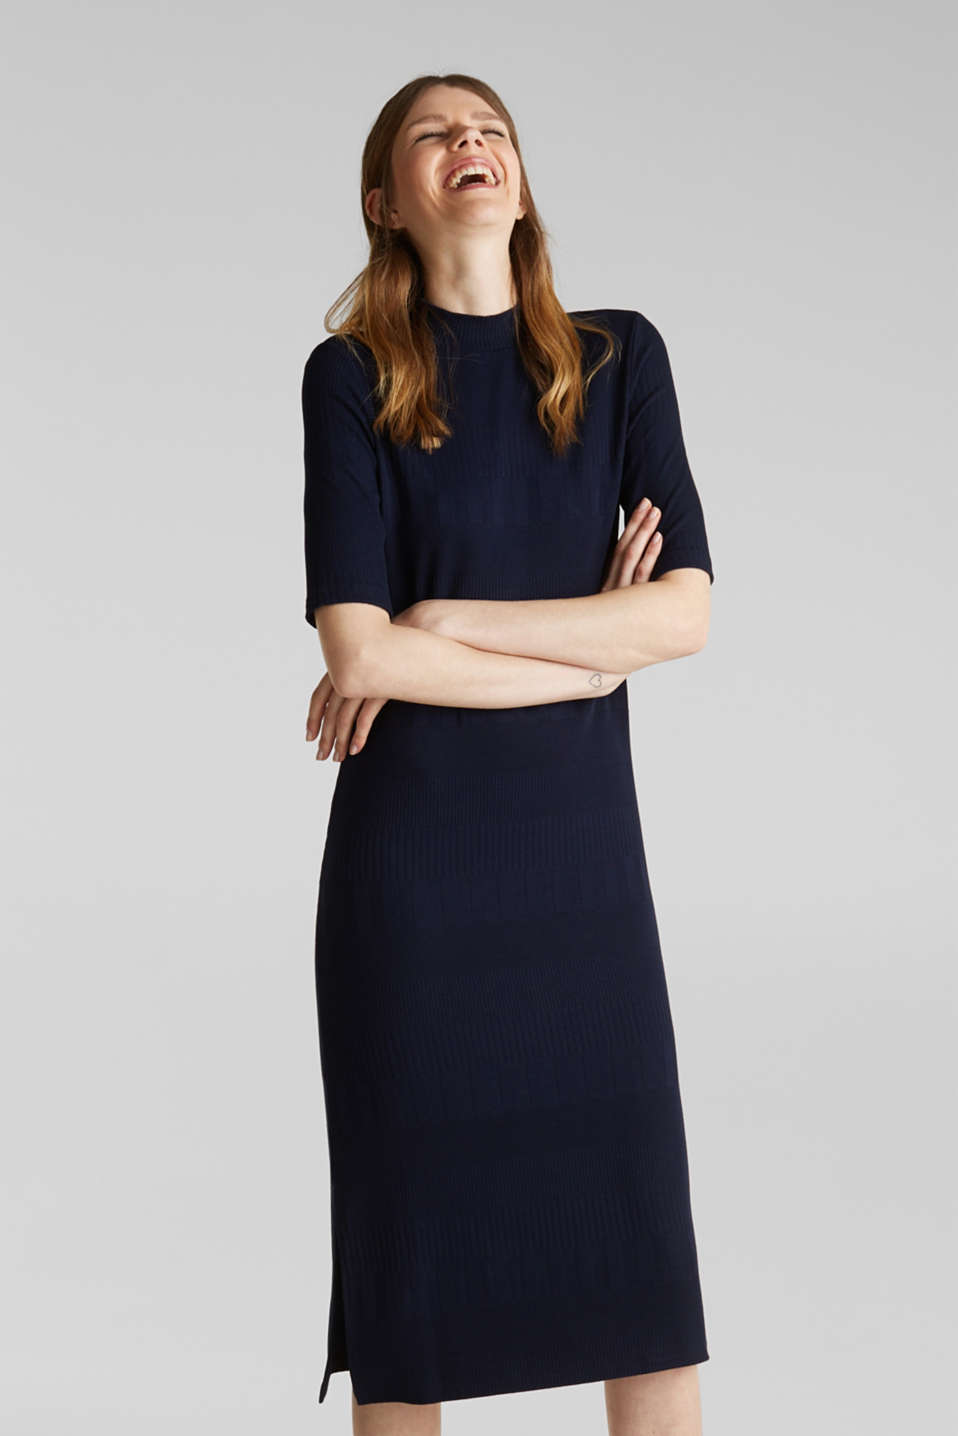 Stretch jersey dress with texture and a stand-up collar, NAVY, detail image number 5